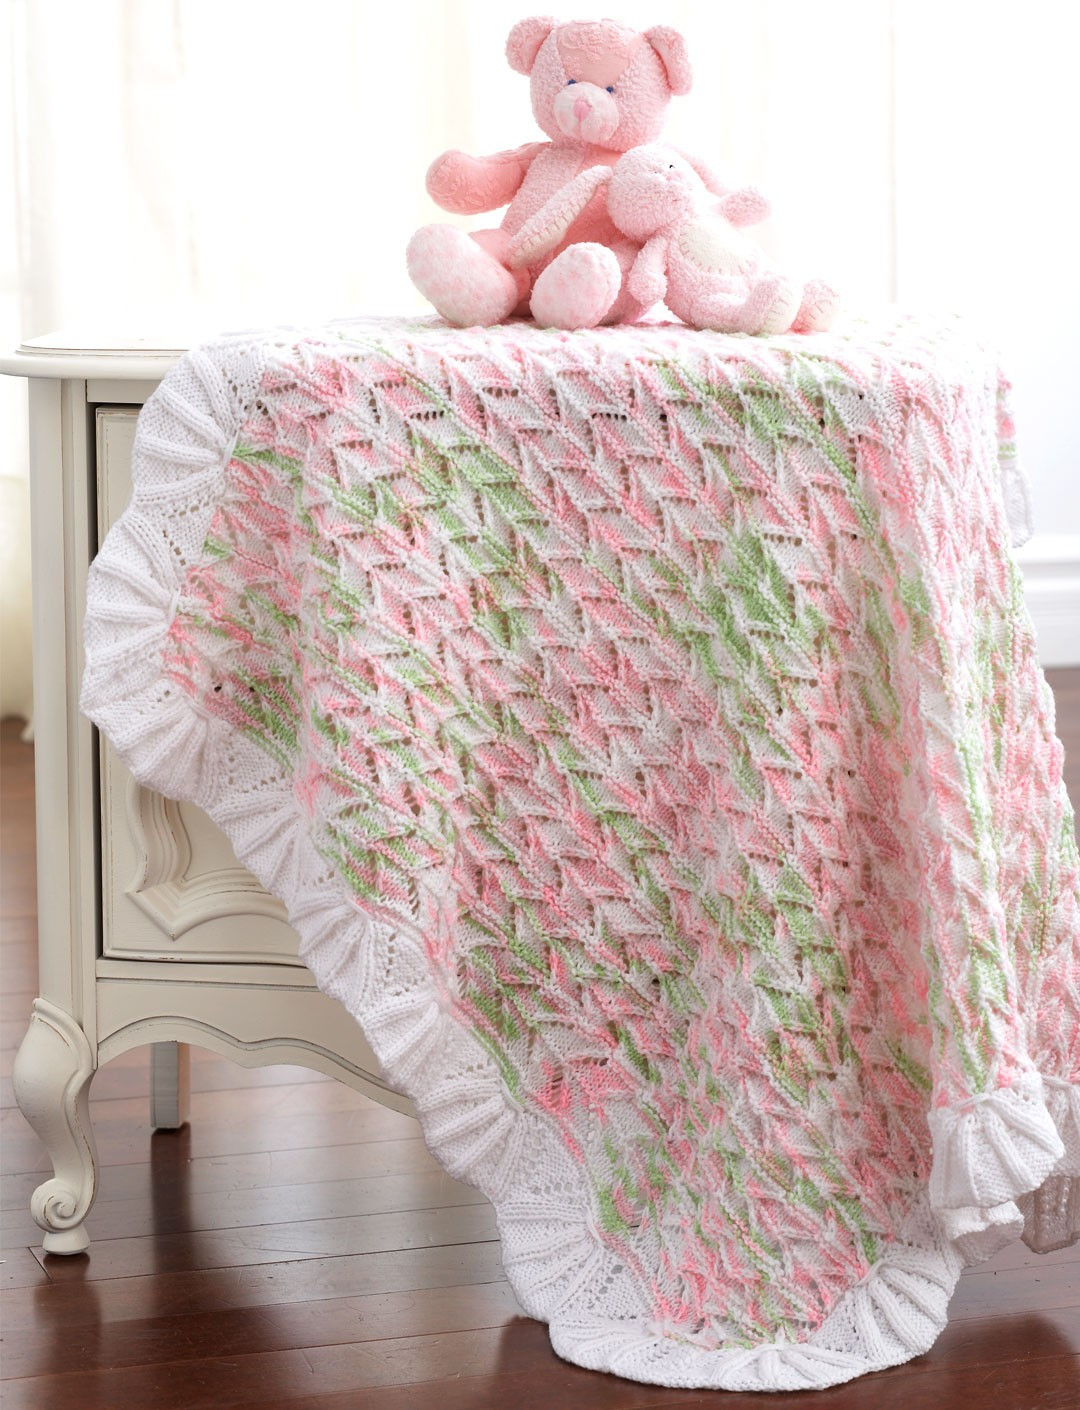 Baby Blanket Knitting Pattern Awesome A some Baby Blanket Knitting Patterns Of Lovely 48 Photos Baby Blanket Knitting Pattern